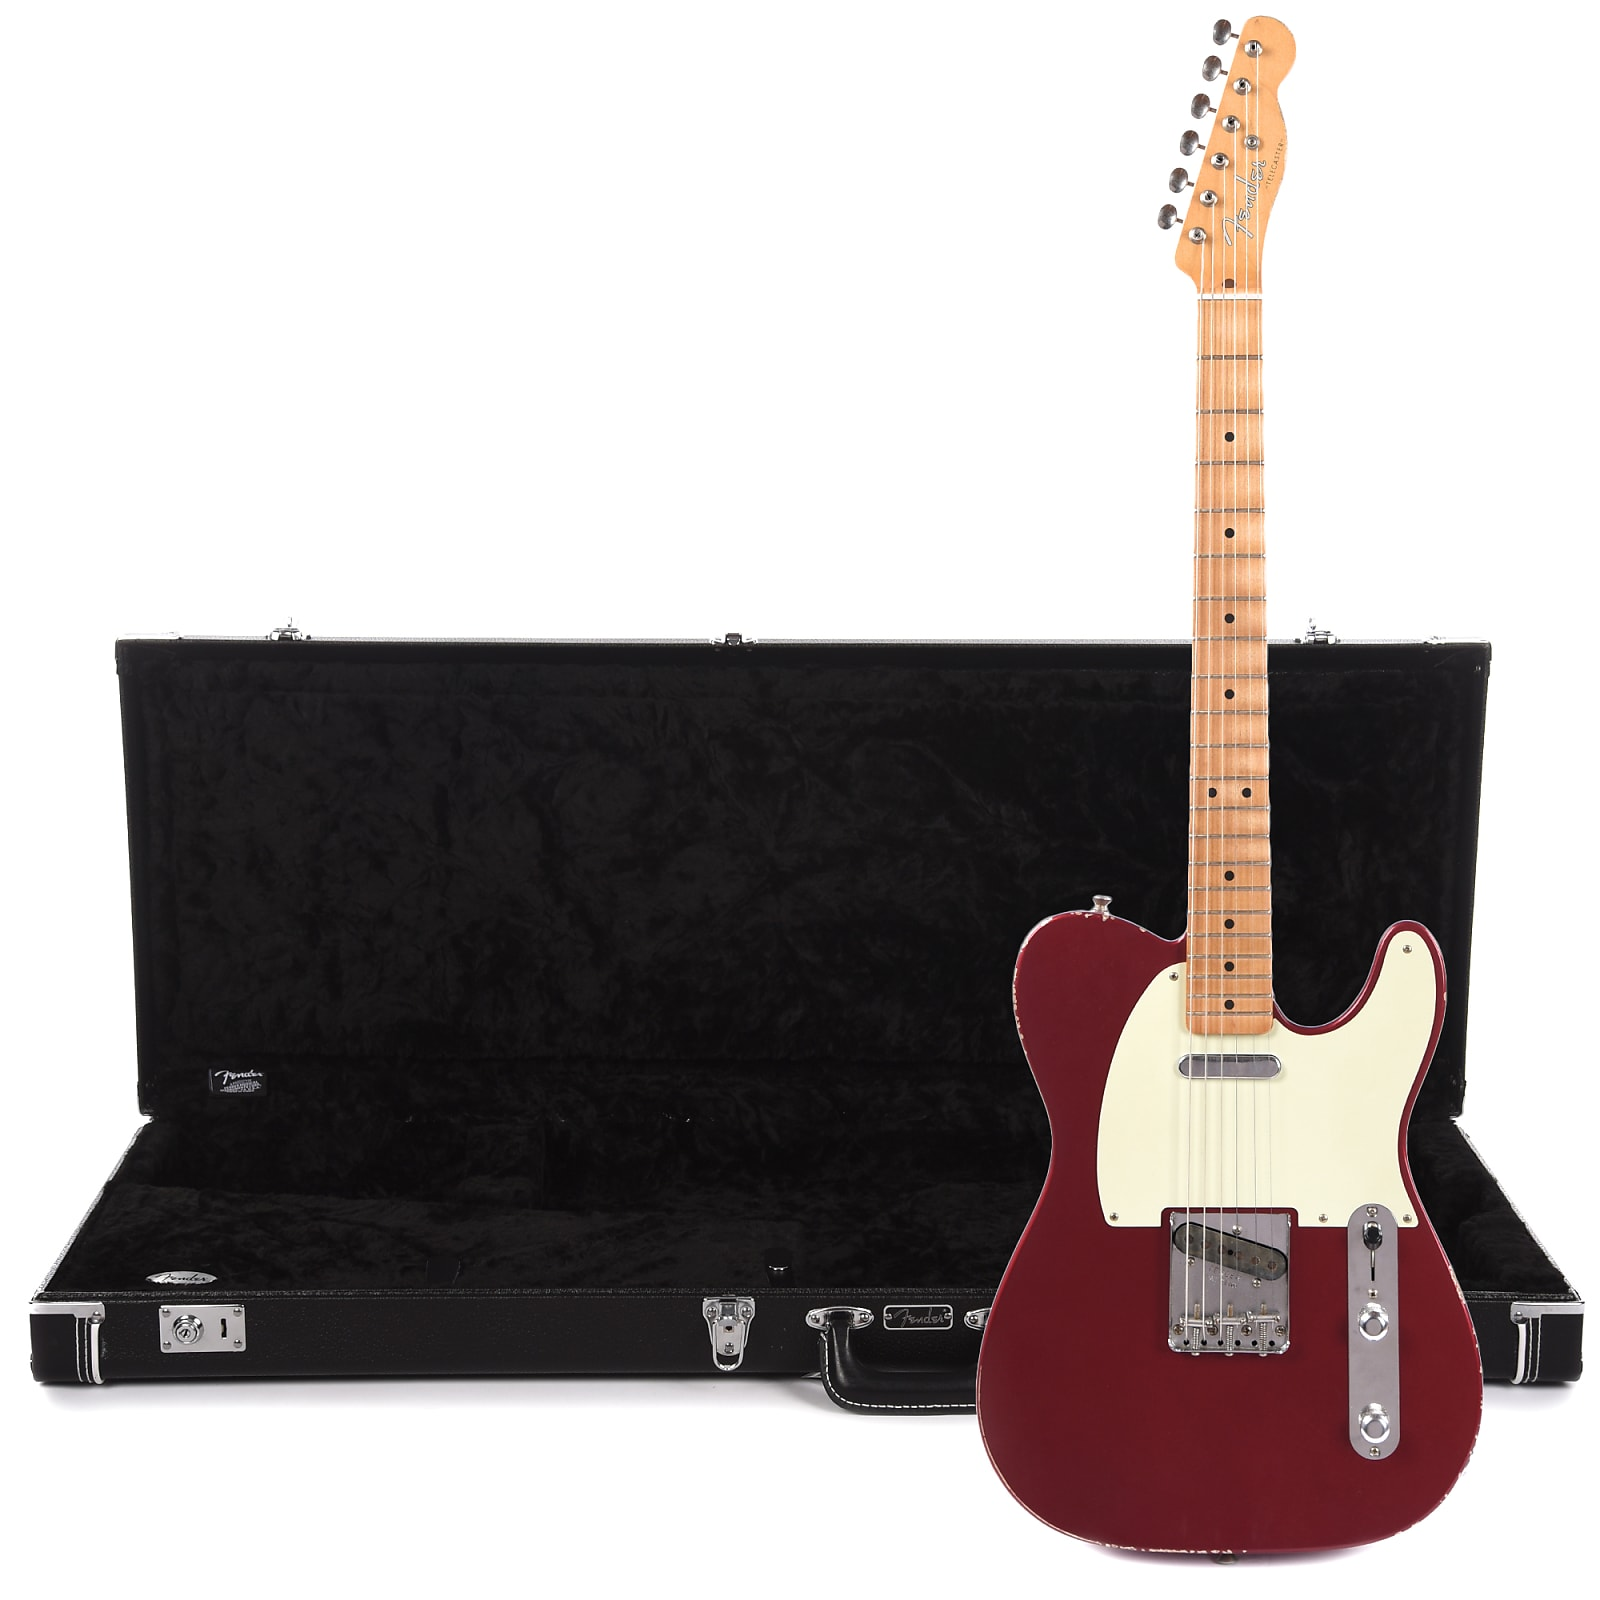 fender road worn 39 50s telecaster mn candy apple red cme exclusive and classic series black. Black Bedroom Furniture Sets. Home Design Ideas